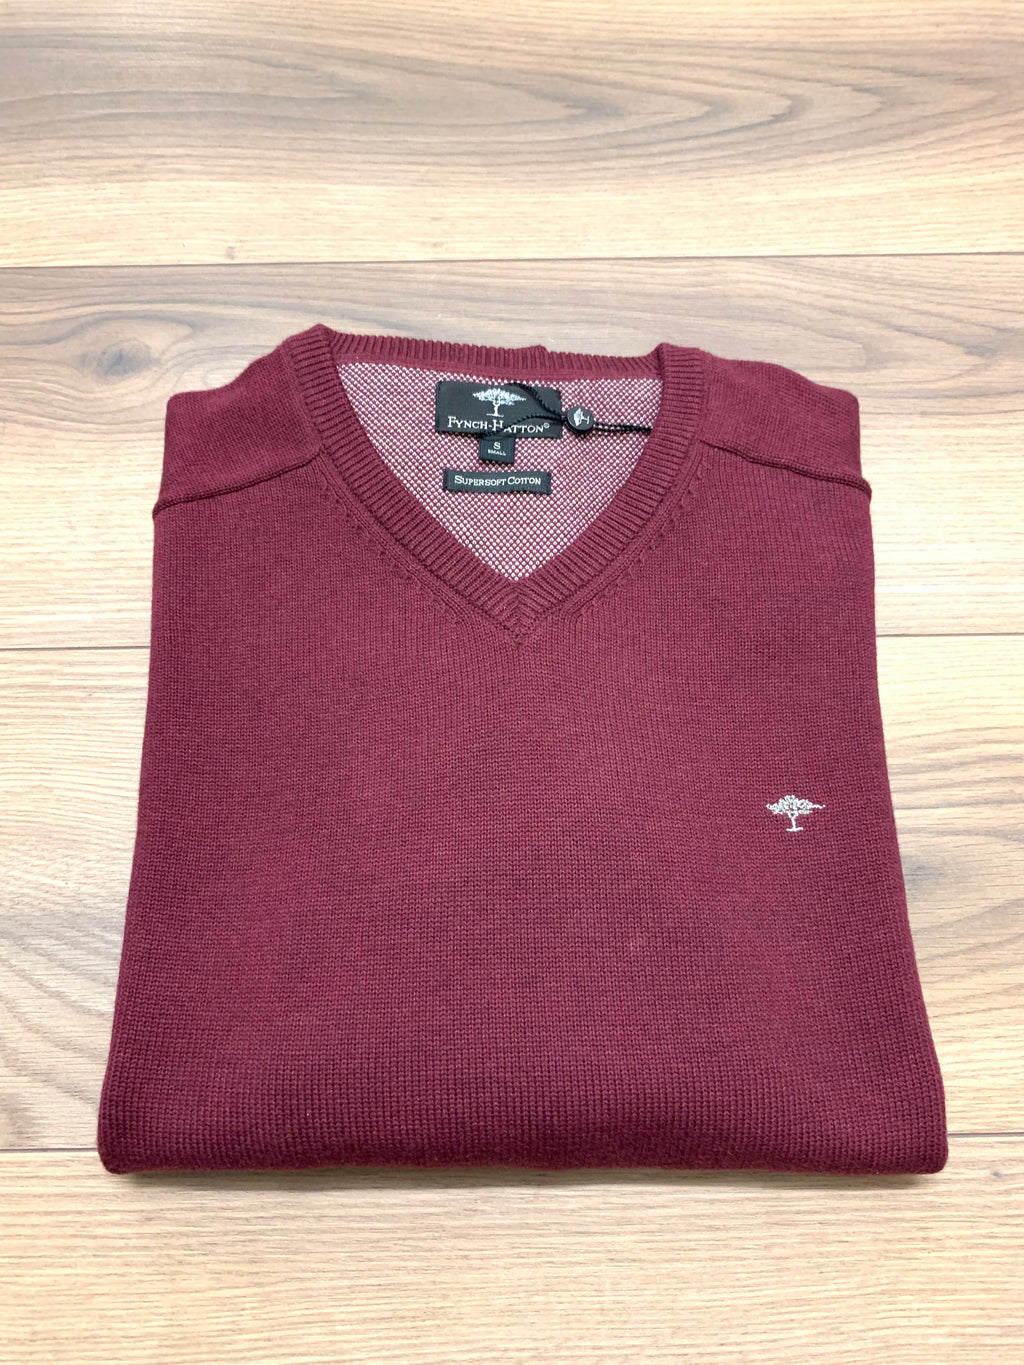 Fynch Hatton V-Neck Jumper - Firebrick - jjdonnelly